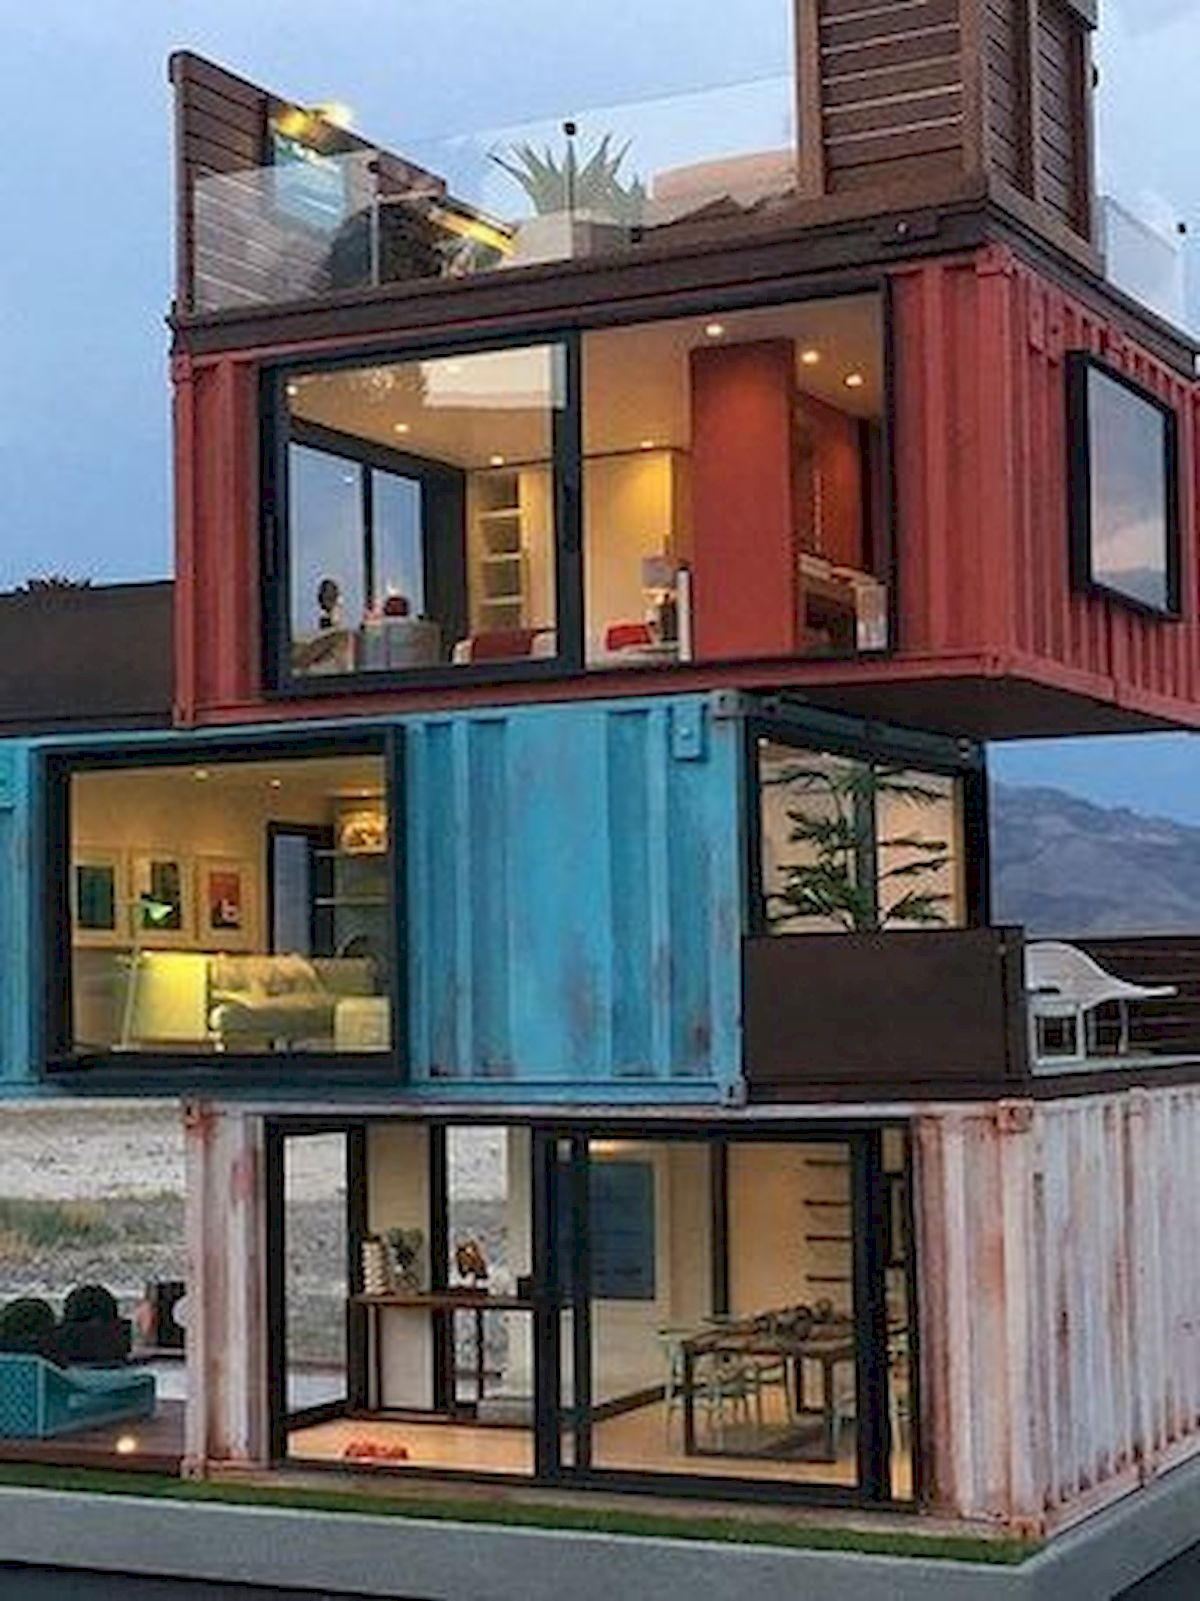 33 Awesome Container House Plans Design Ideas (23)